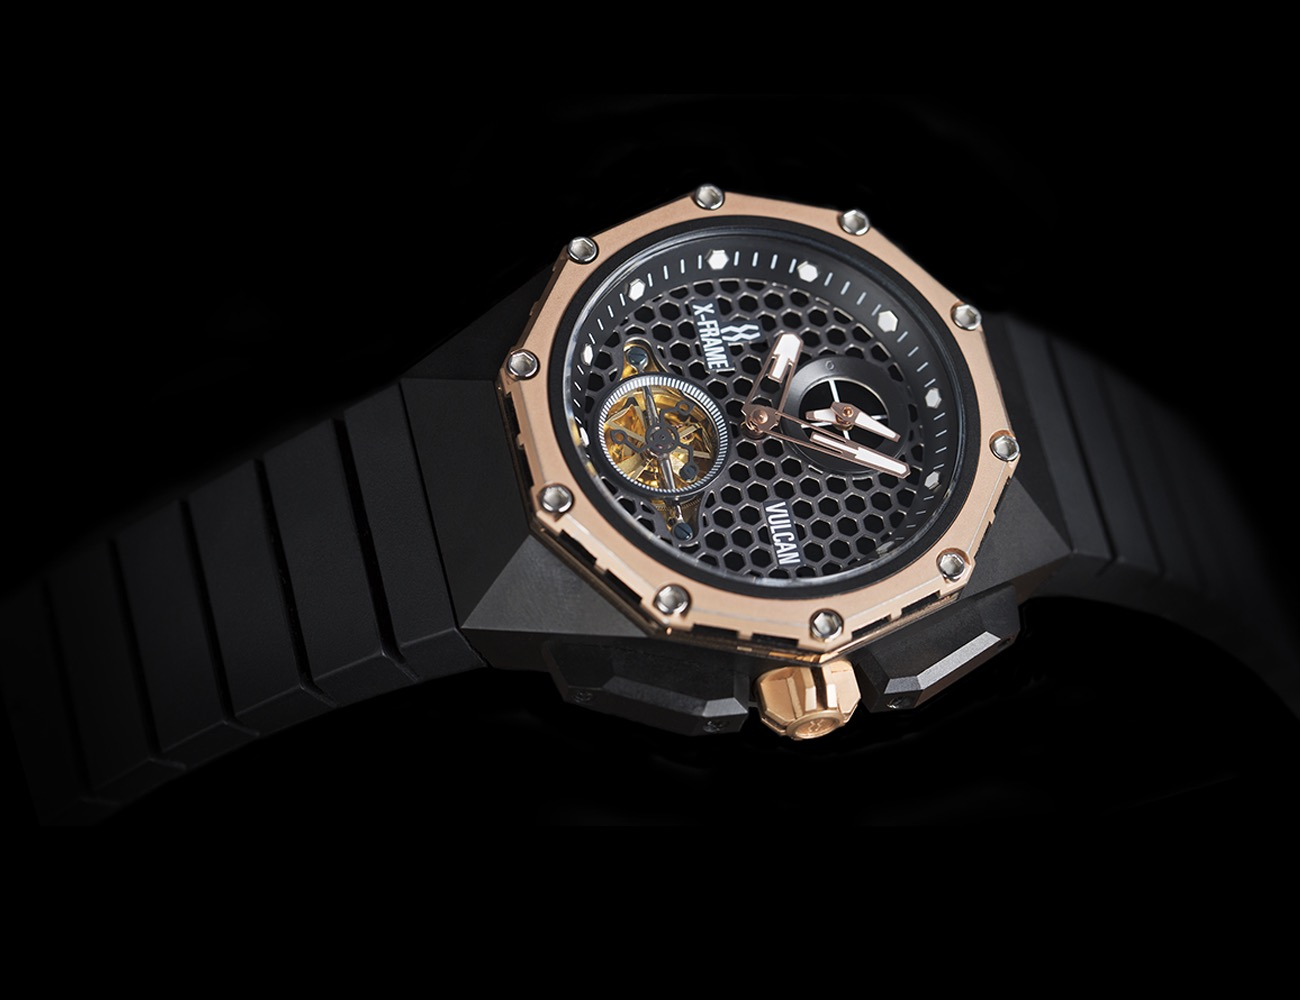 The X-Frame Mechanical Watch